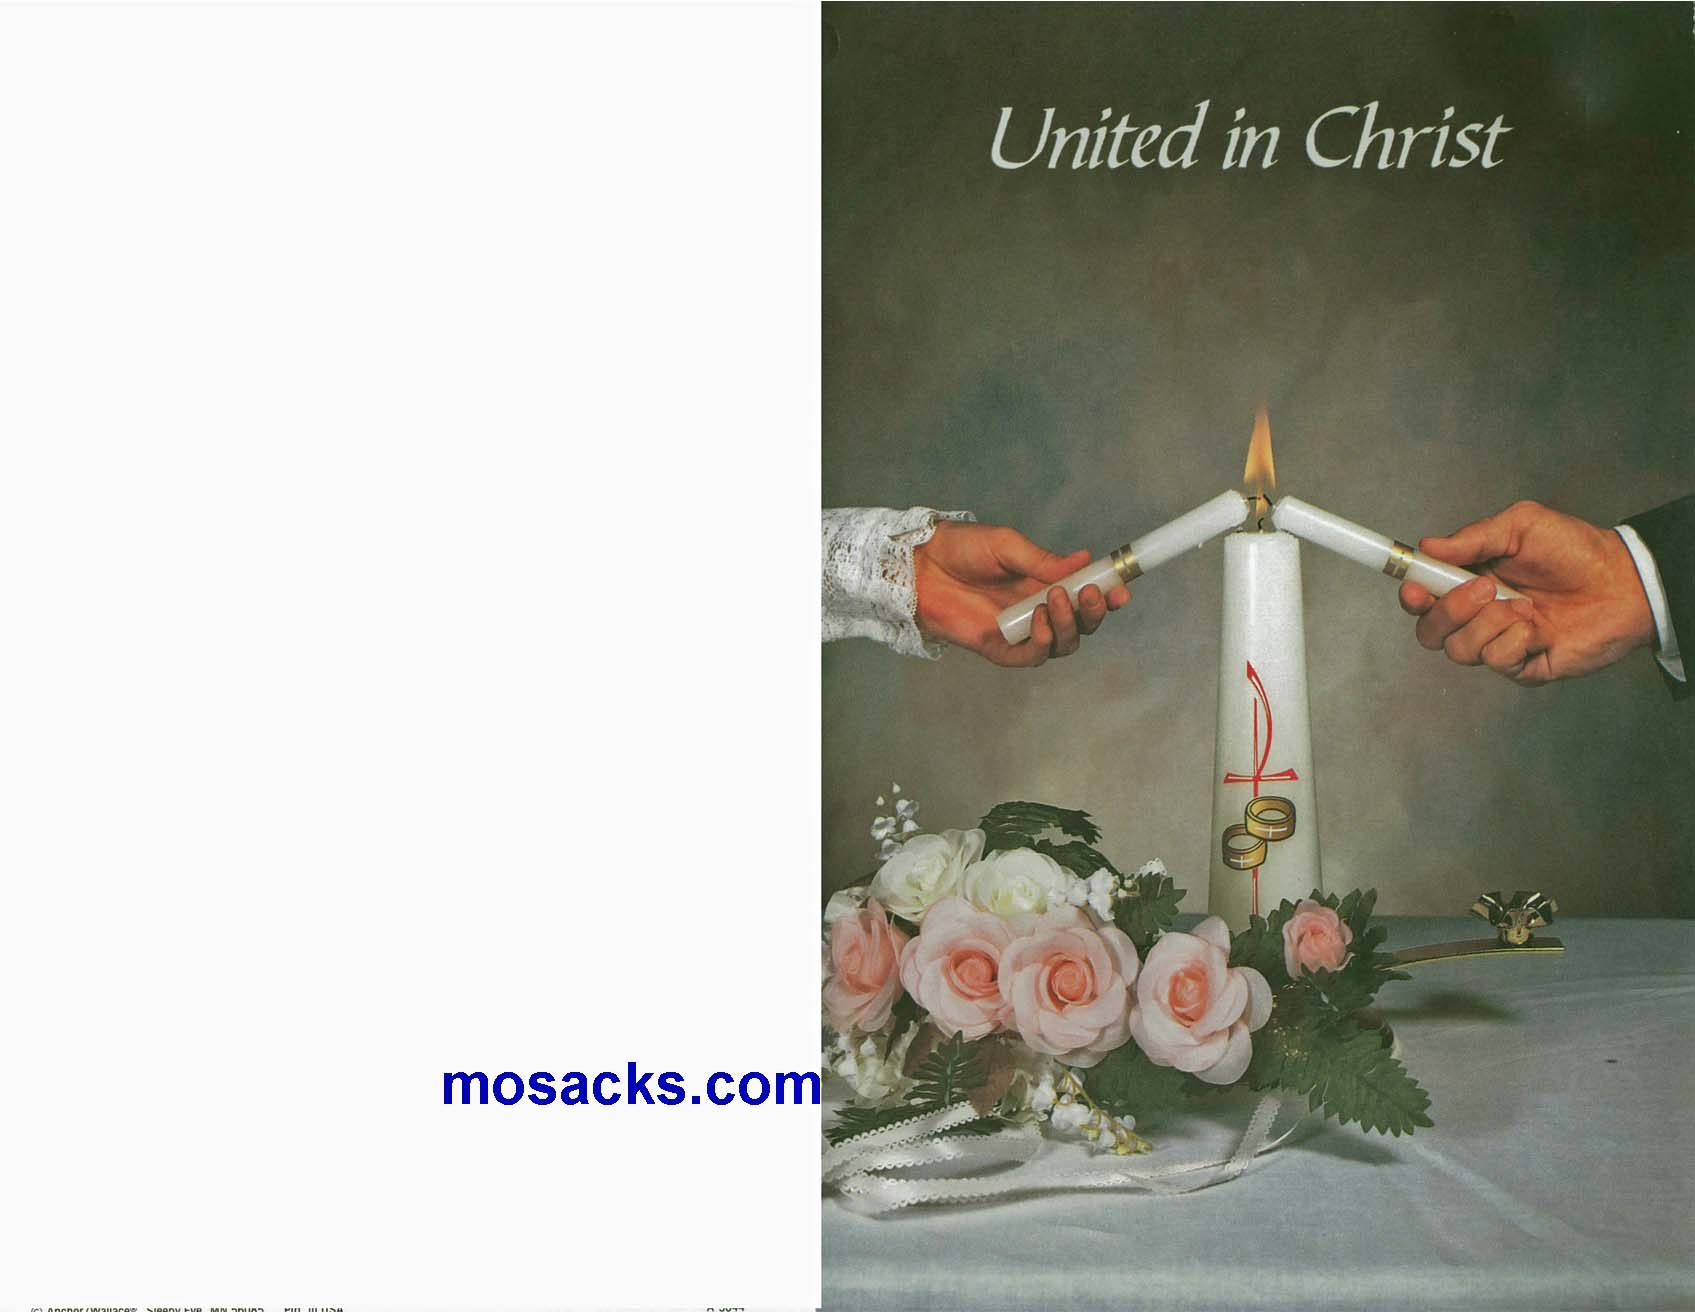 Wedding Bulletin Covers United In Christ 100 Pack-A5044, Wedding Cover